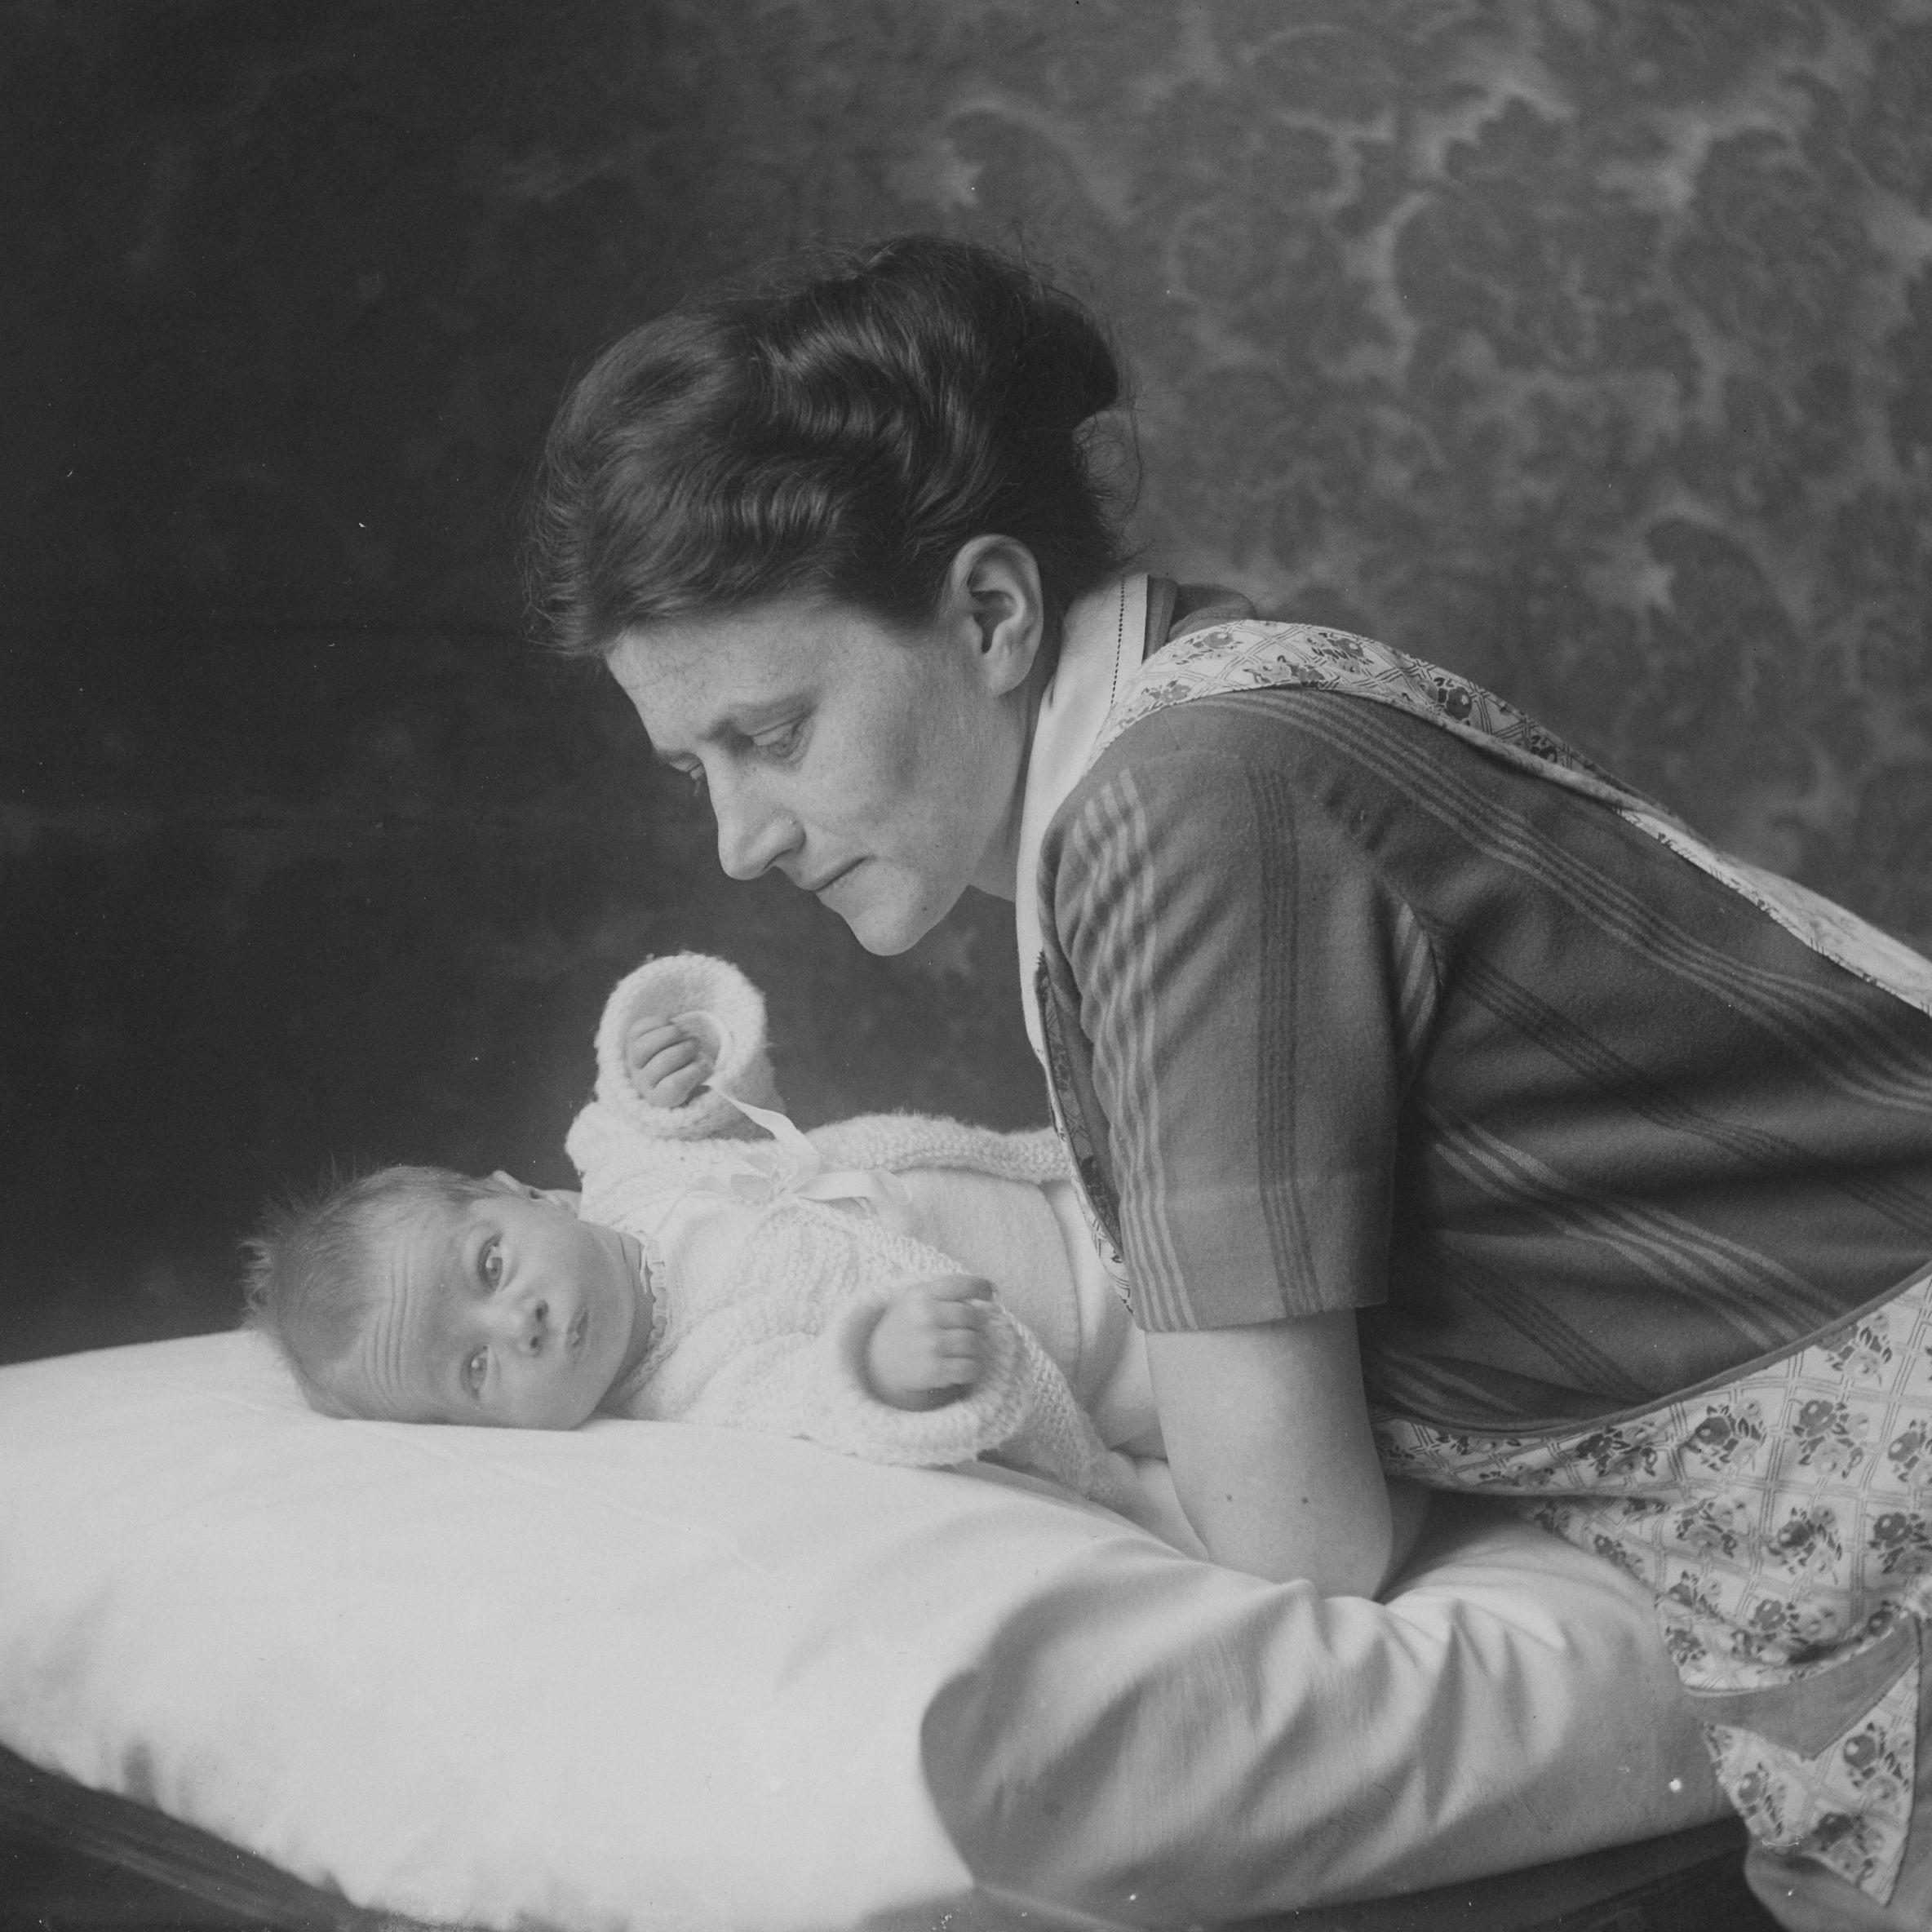 "<p>Behaviorist John Watson took the warning that holding babies too much would spoil them to the next level by advising mothers to be ""sensible"" in <a href=""http://www.redbookmag.com/life/mom-kids/advice/g3649/things-you-should-never-say-to-children/"" target=""_blank"" data-tracking-id=""recirc-text-link"">how they interact with their babies</a>. ""Never hug and kiss them or let them sit on your lap. Shake hands with them in the morning. Give them a pat on the head if they have made an extraordinary good job of a difficult task,"" he wrote in <a href=""https://books.google.com/books?id=P6IH1ff88nEC&pg=PA180&lpg=PA180&dq=rendered+lard%22+infant+bath&source=bl&ots=cjJ-zTQE_s&sig=TNg84e0TQGdbDEt_eWvt8wCHvLk&hl=en&sa=X&ei=m52JUN6uAcaB0QG6hoHYBw#v=onepage&q=little%20tyrant&f=false"" target=""_blank""><i data-tracking-id=""recirc-text-link"" data-redactor-tag=""i"">Psychological Care of the Infant and Child</i></a>. ""If you must, kiss them once on the forehead when they say goodnight."" If you<i data-redactor-tag=""i""> MUST</i>? Anyone who would instruct loving mothers to count and ration their kisses probably hasn't known many mothers. </p>"